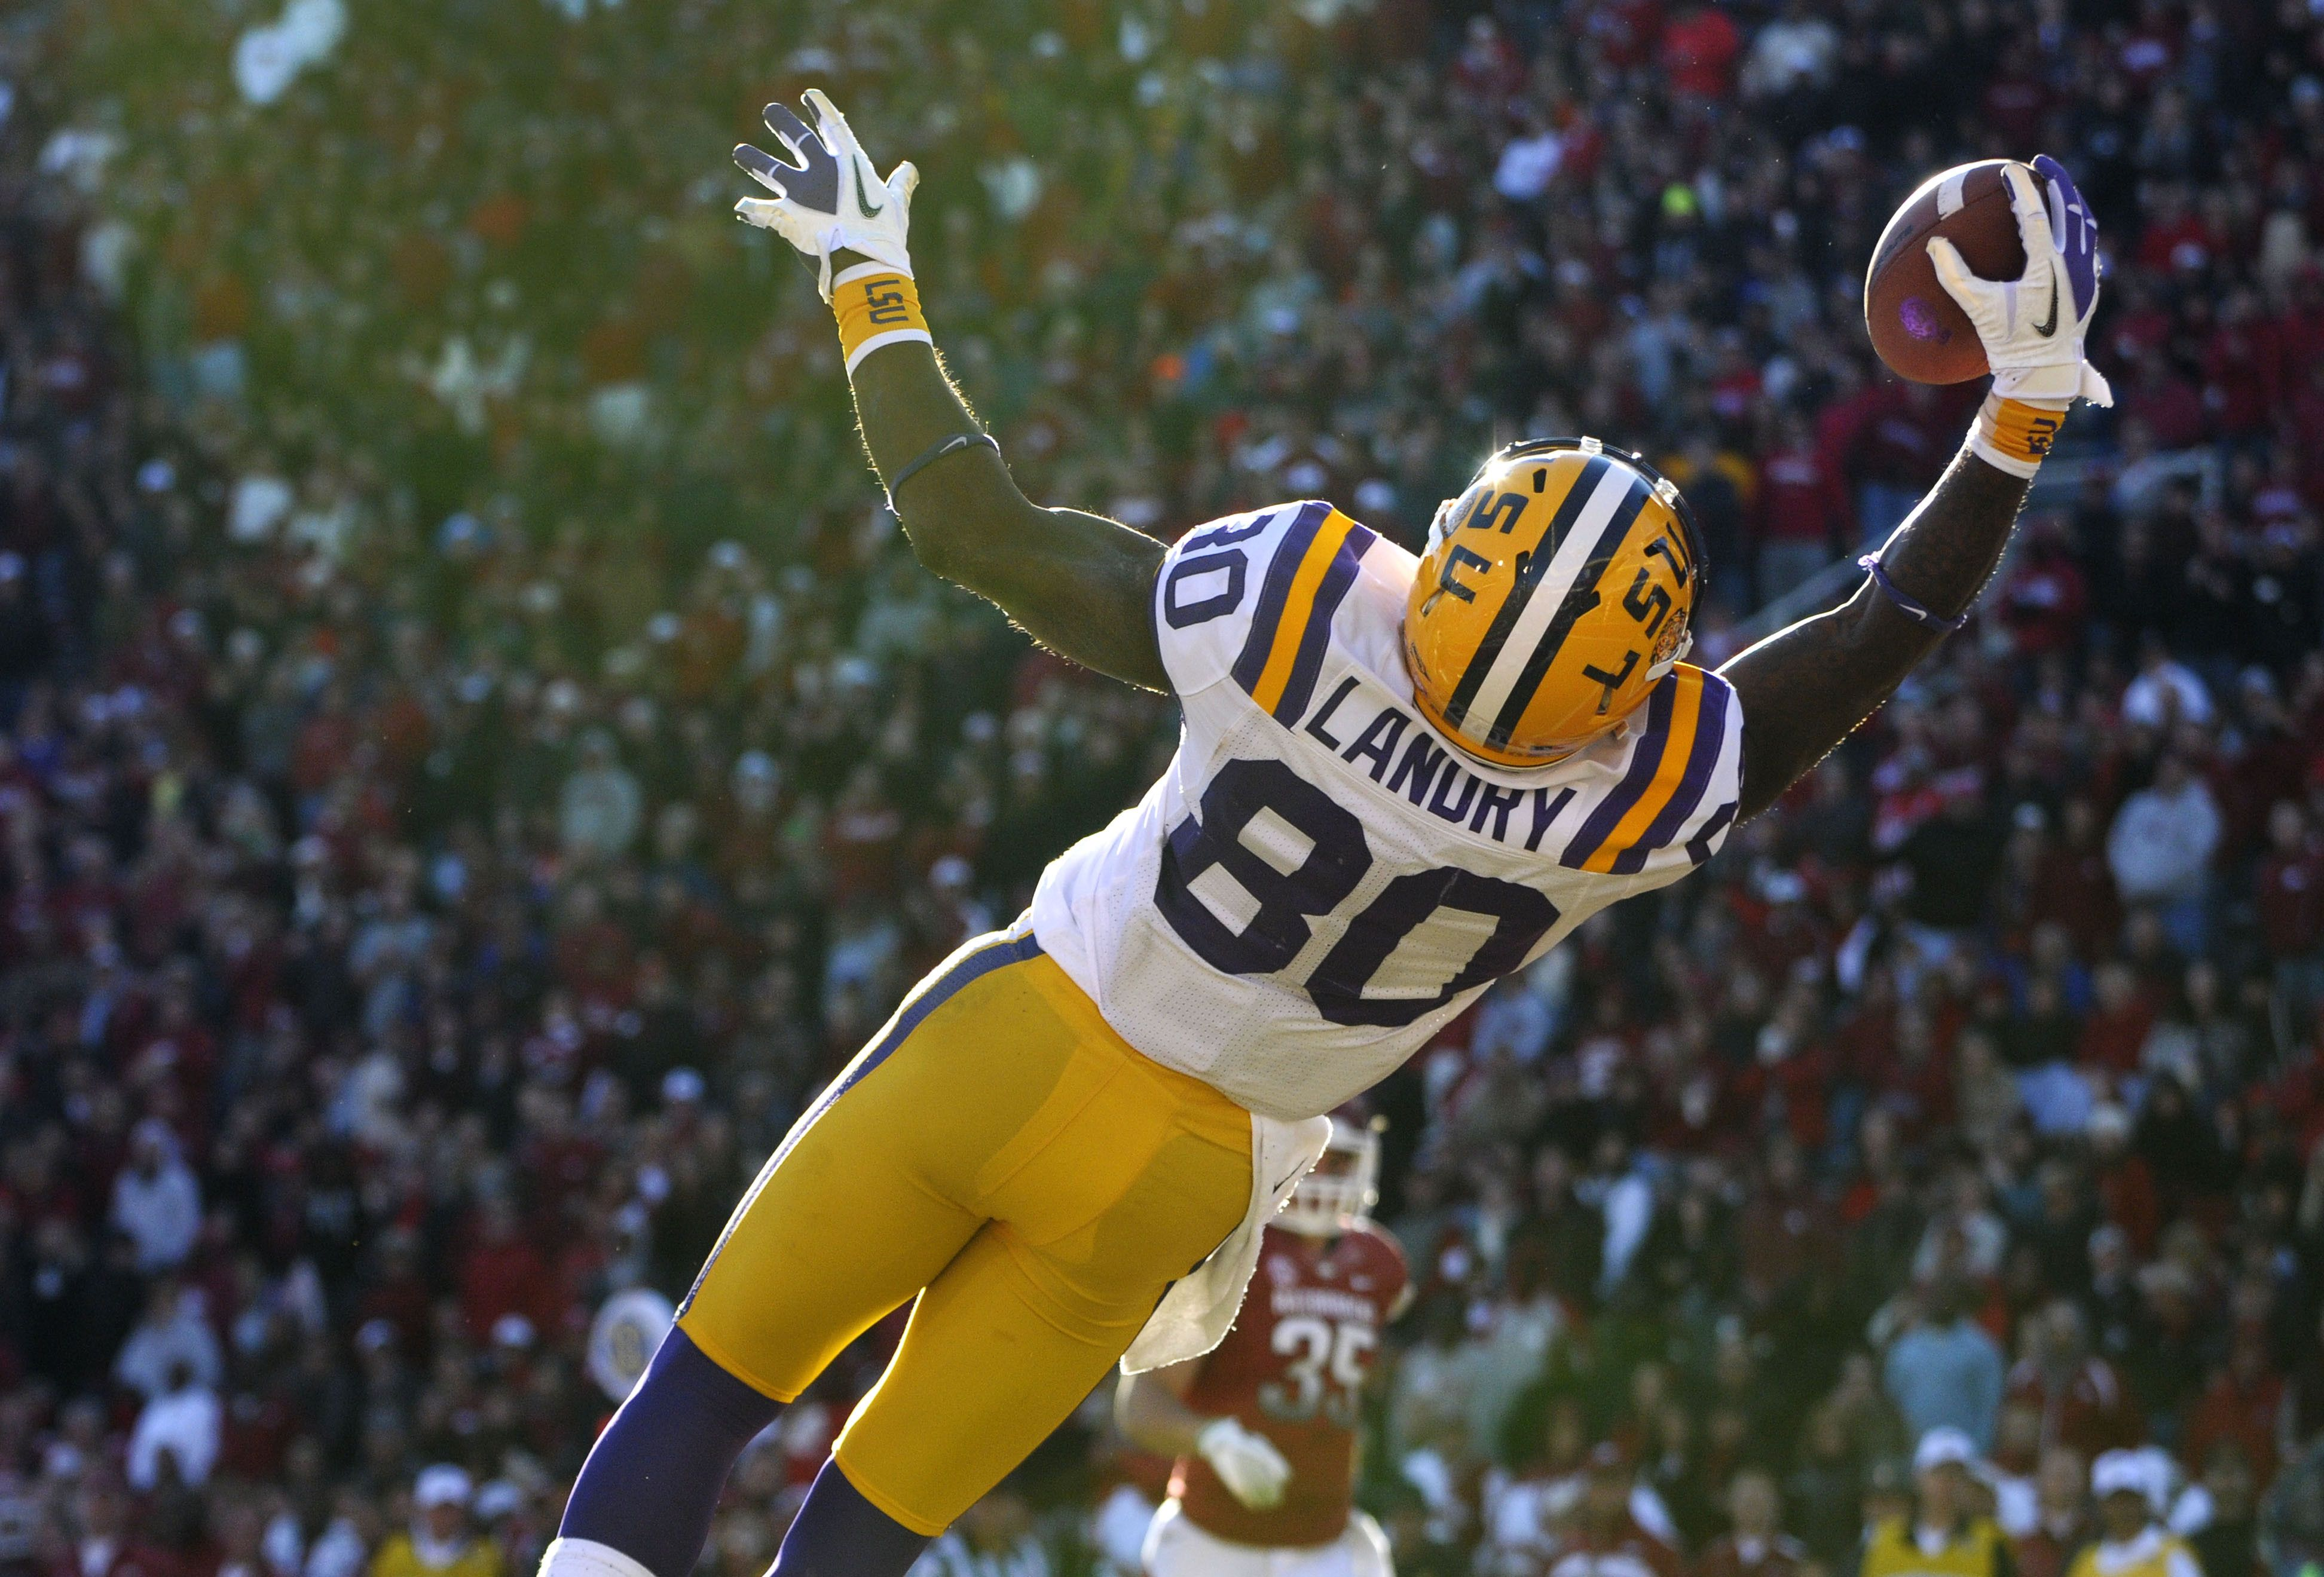 Look Catch Of The Year College Football Top 25 Football Lsu Tigers Football